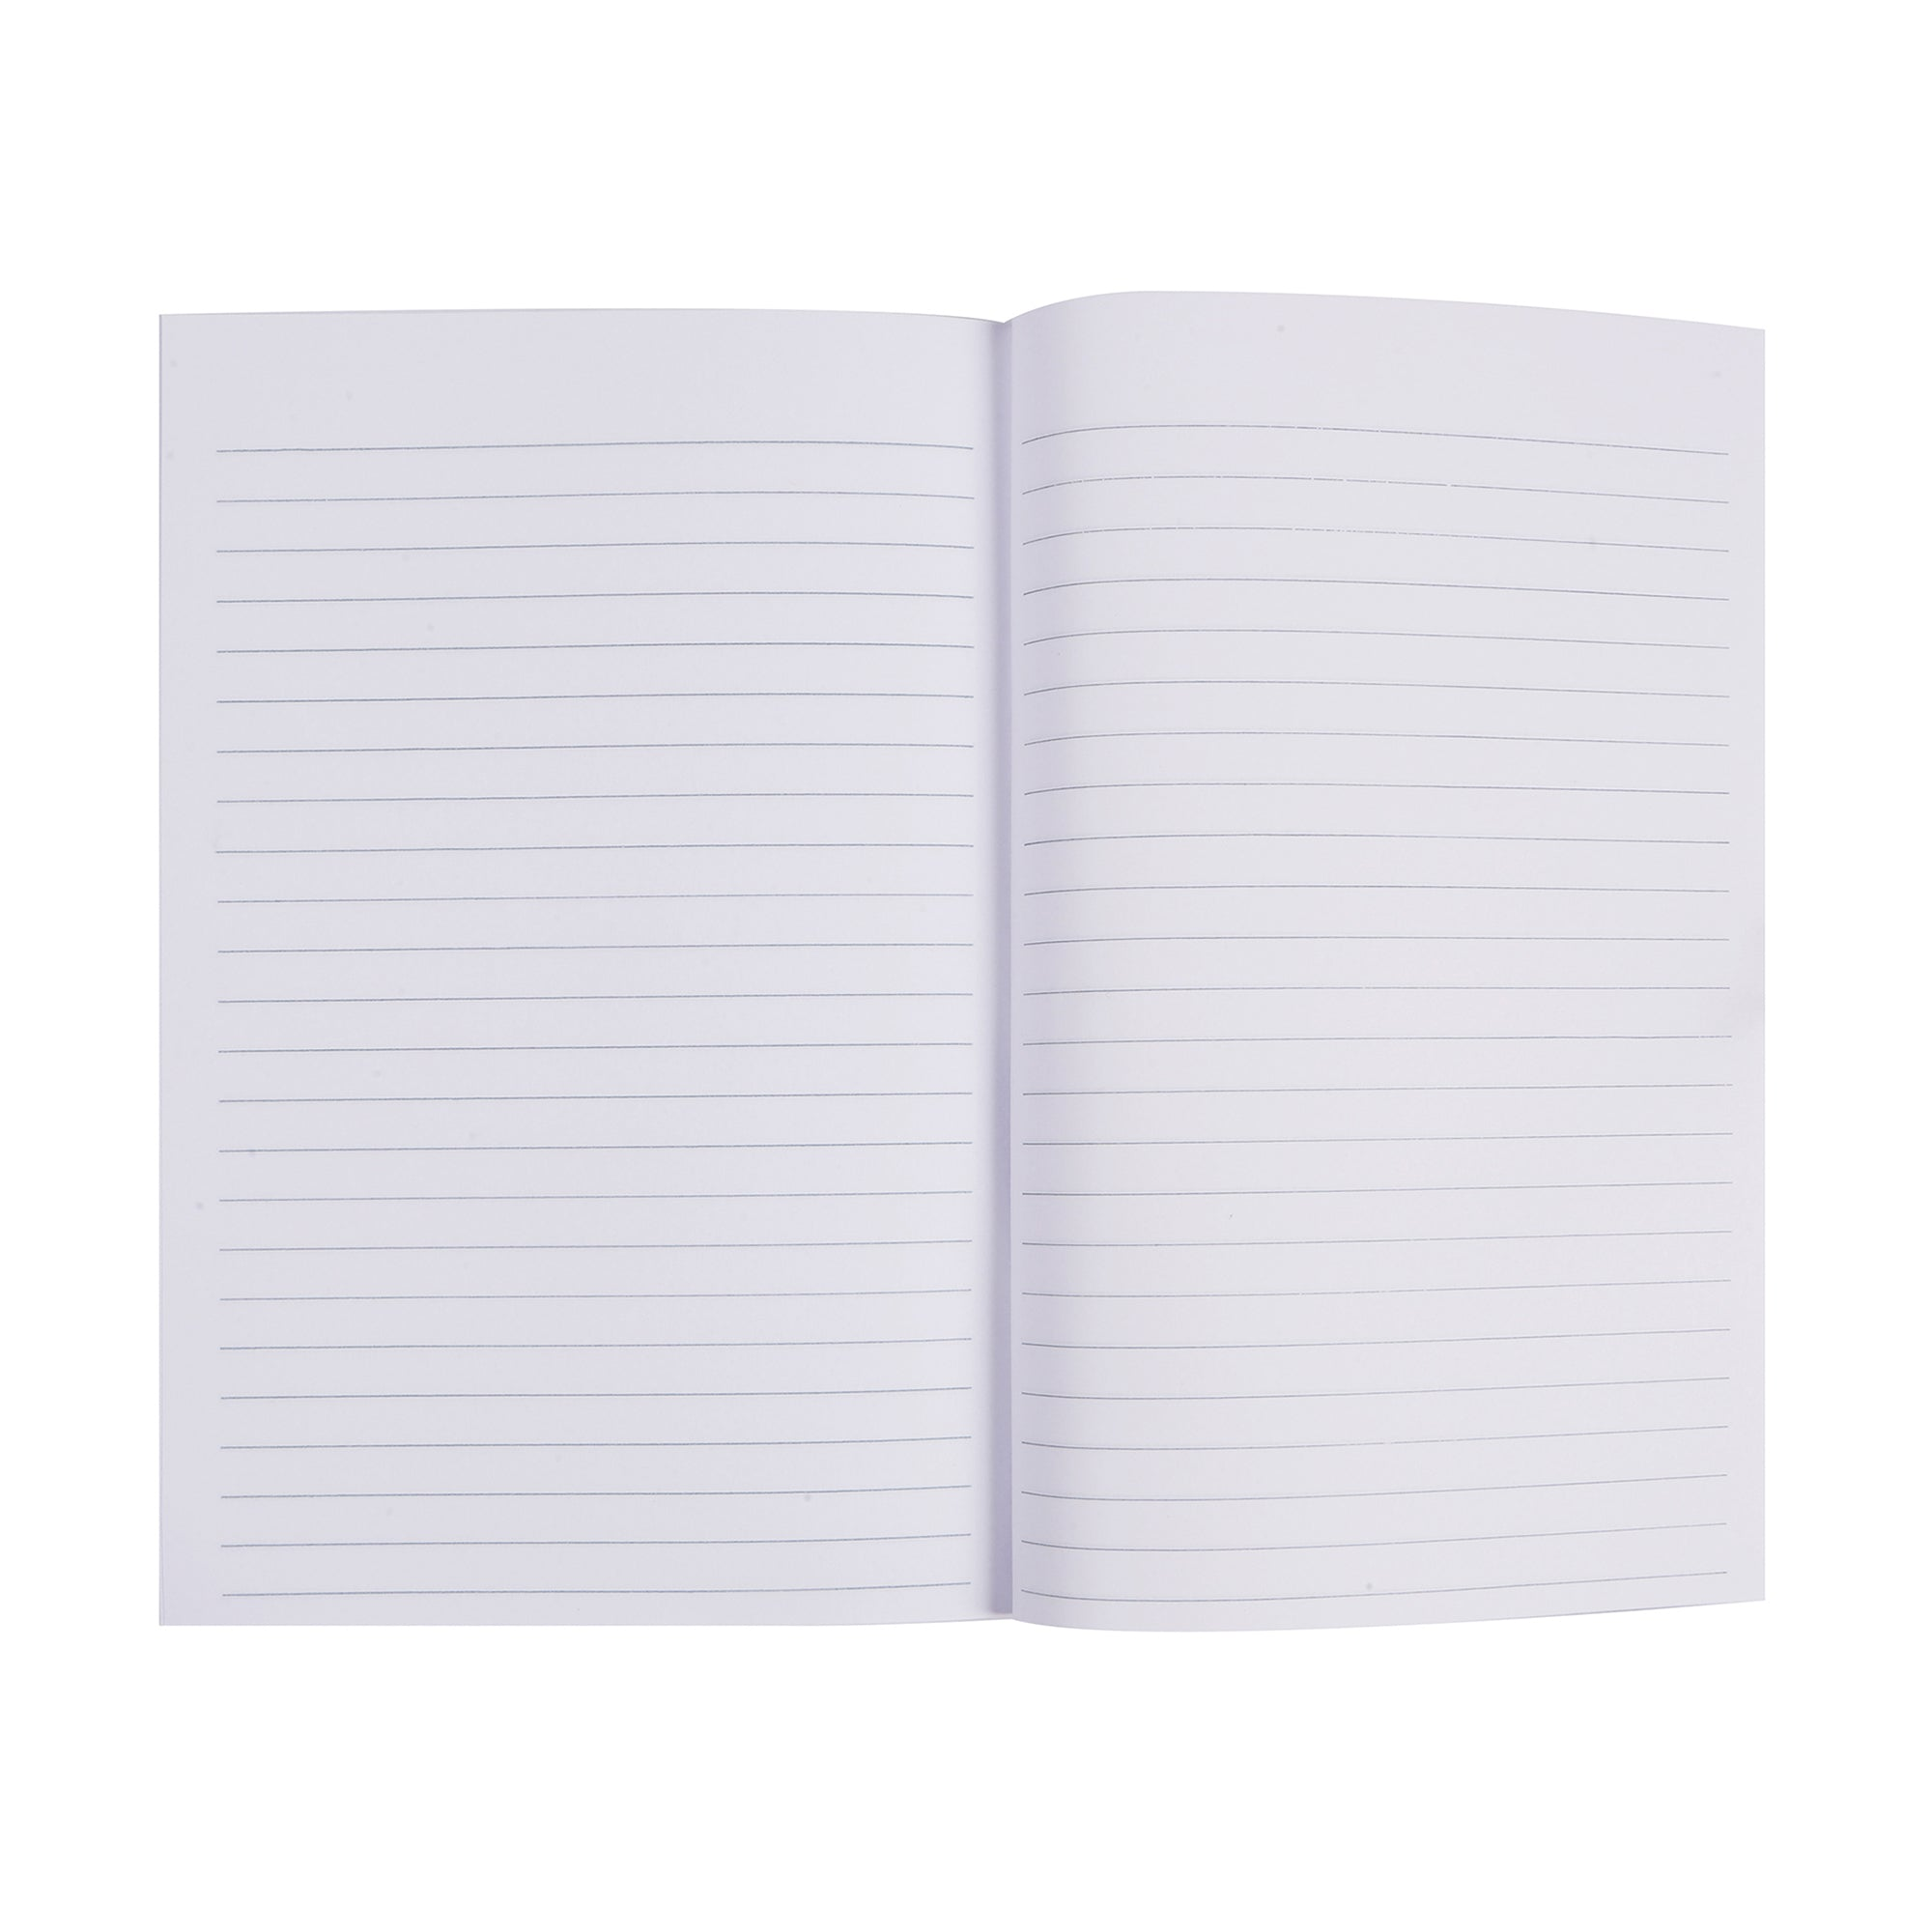 Love Heart Notebooks (Pack Of 2 - 120 Pages)